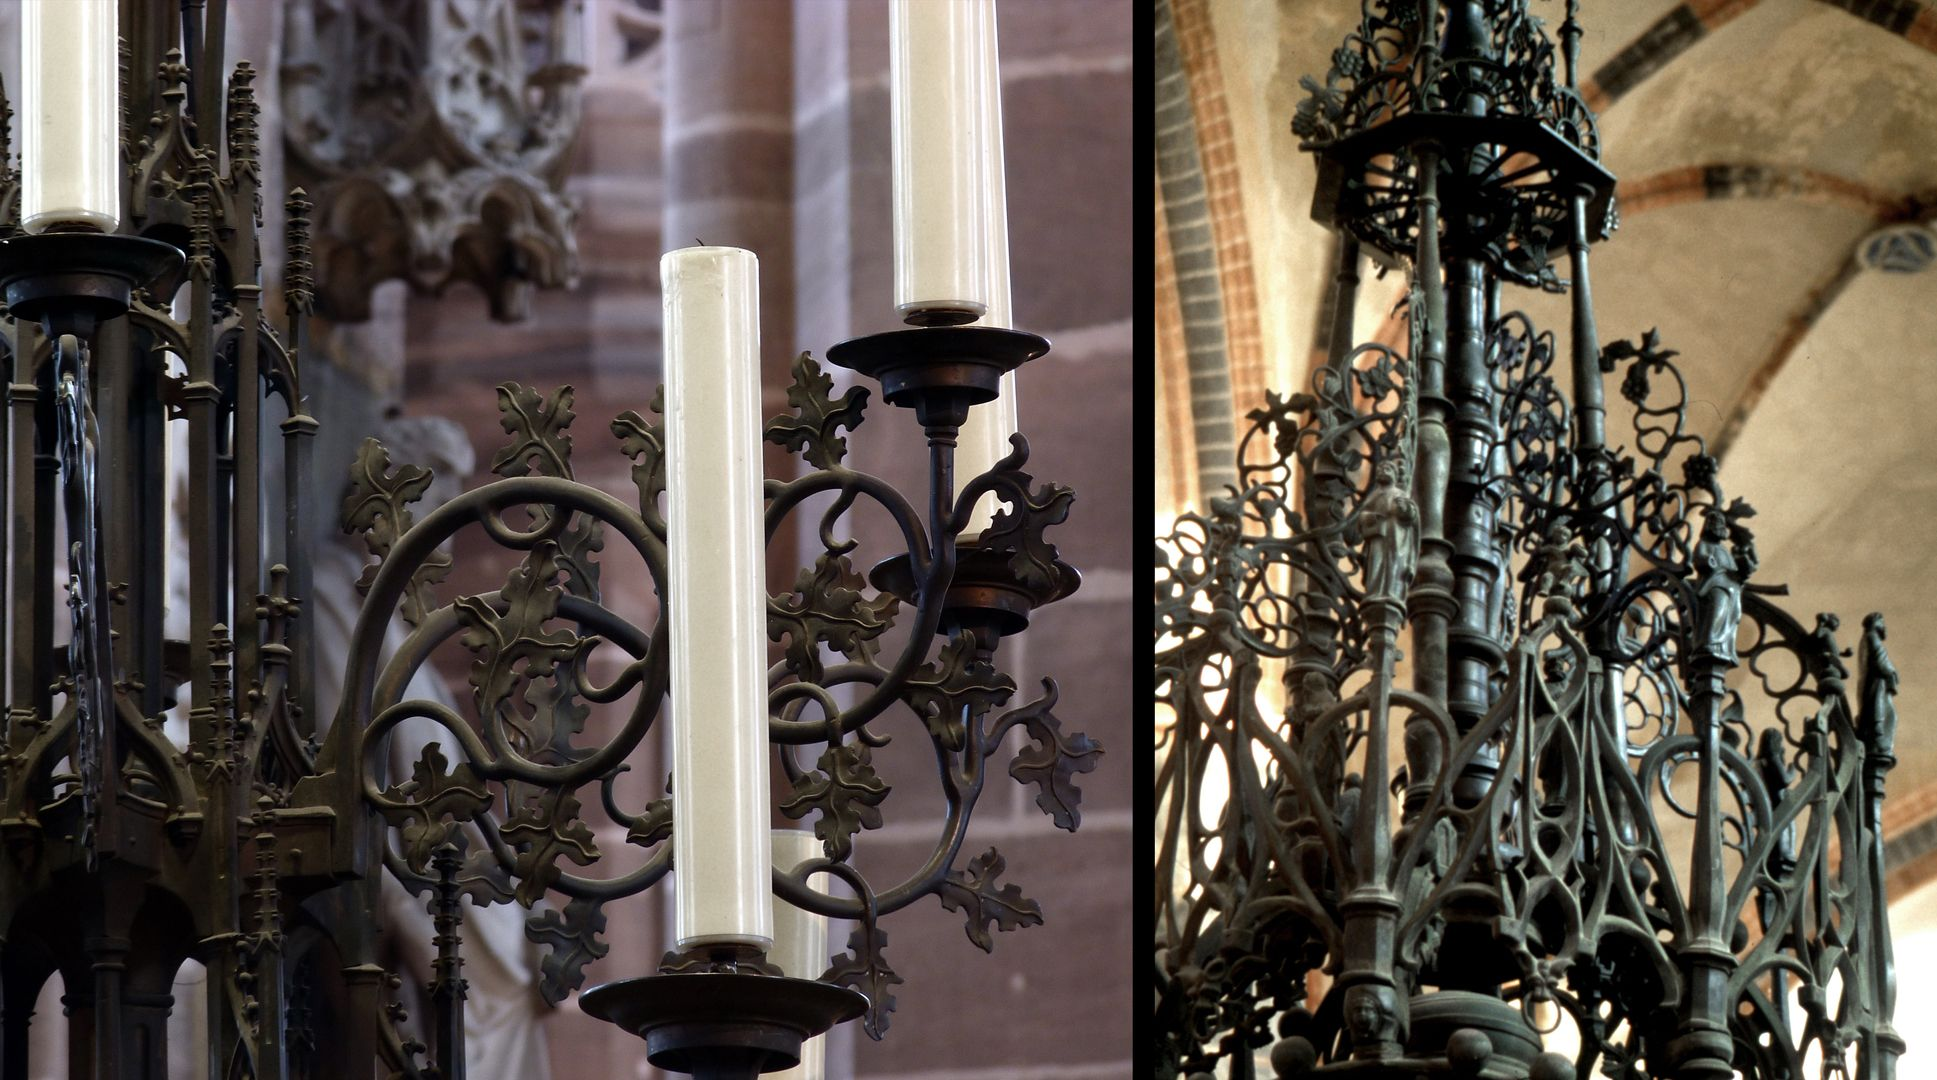 Baptismal font Left: Chandelier from St. Lorenz in Nuremberg, right: Detail of the canopy